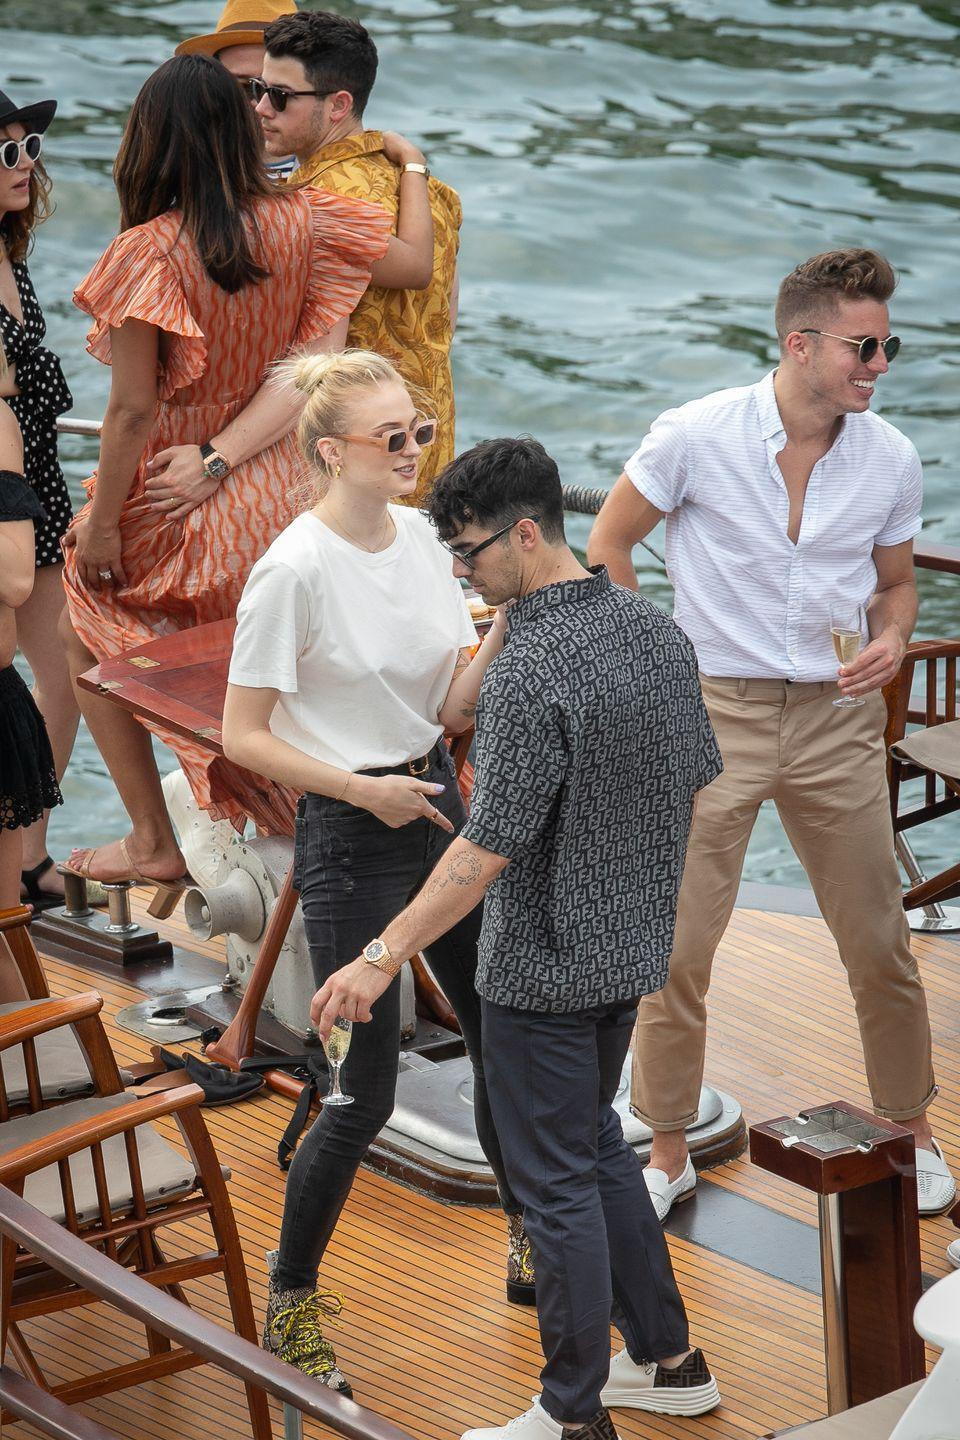 """<p>Dancing on board a yacht together for their<a href=""""https://www.elle.com/uk/life-and-culture/wedding/a28182548/sophie-turner-joe-jonas-wedding-dress-pictures/"""" rel=""""nofollow noopener"""" target=""""_blank"""" data-ylk=""""slk:pre-wedding festivities in Paris."""" class=""""link rapid-noclick-resp""""> pre-wedding festivities in Paris.</a></p>"""